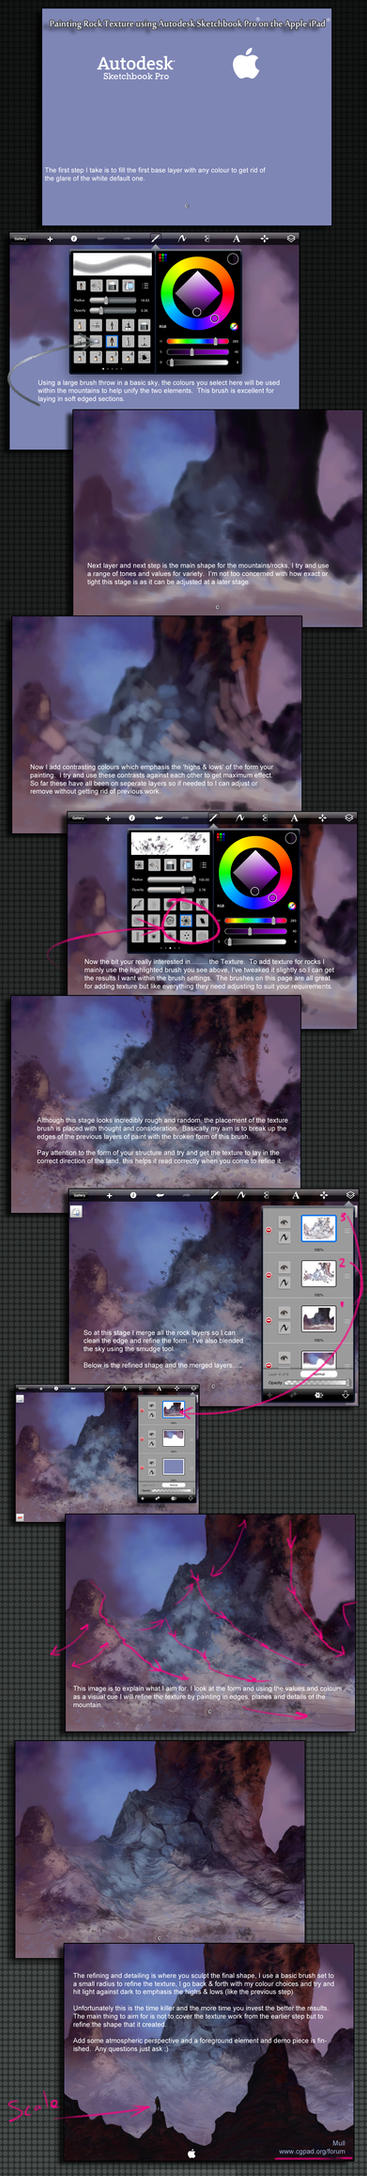 iPad  Sketchbook Pro Tutorial by Mull-Art